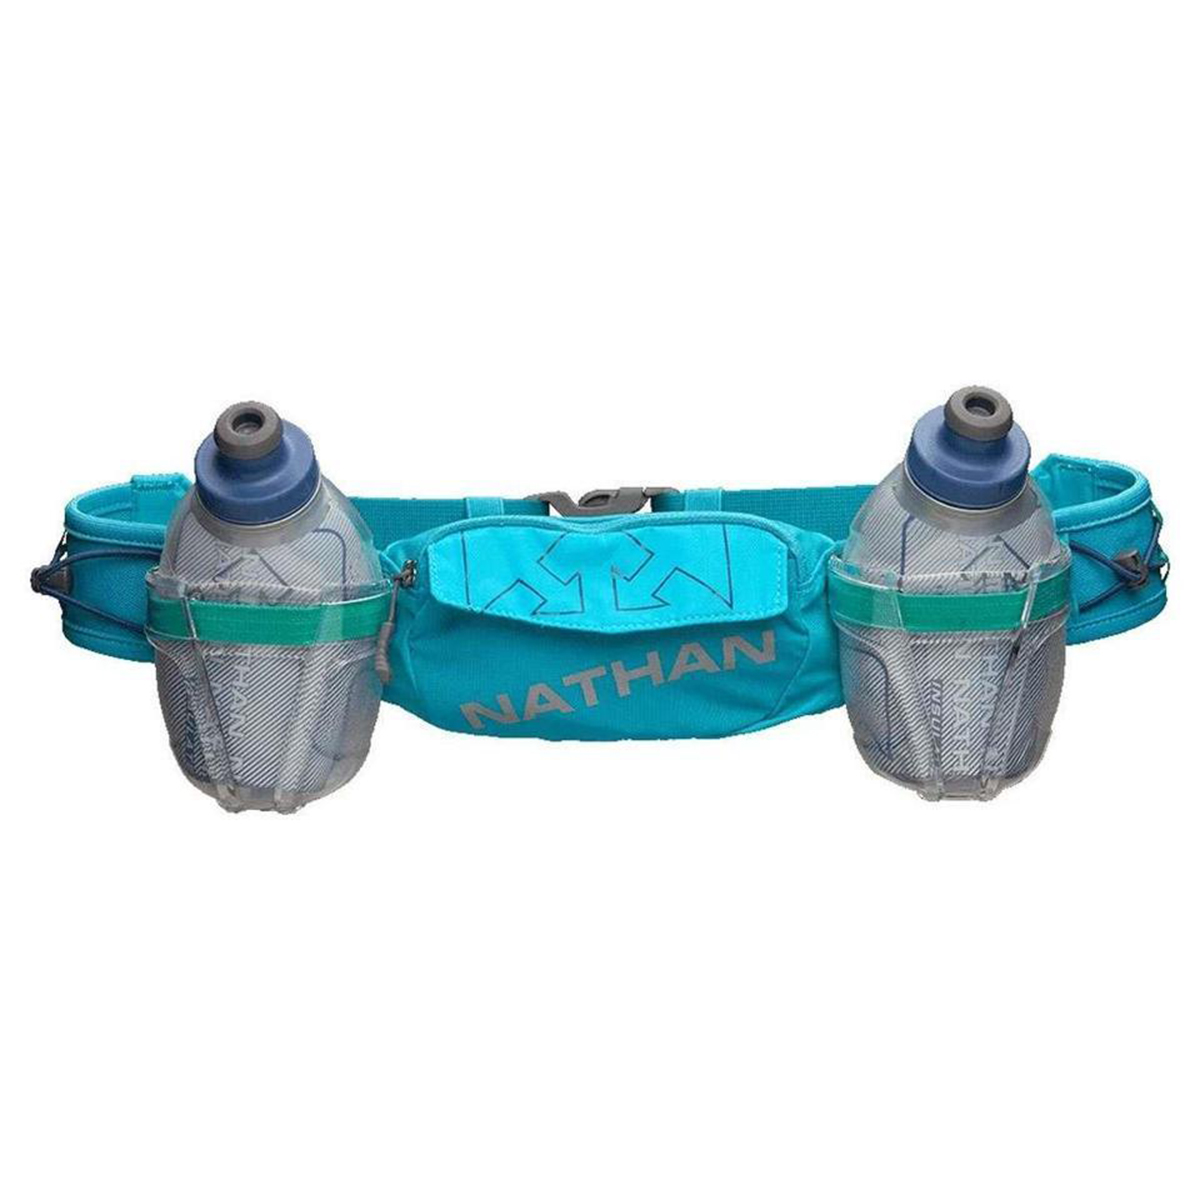 Nathan Trailmix Plus Insulated Hydration Belt - Color: Bluebird/Peacock - Size: One Size, Bluebird/Peacock, large, image 1